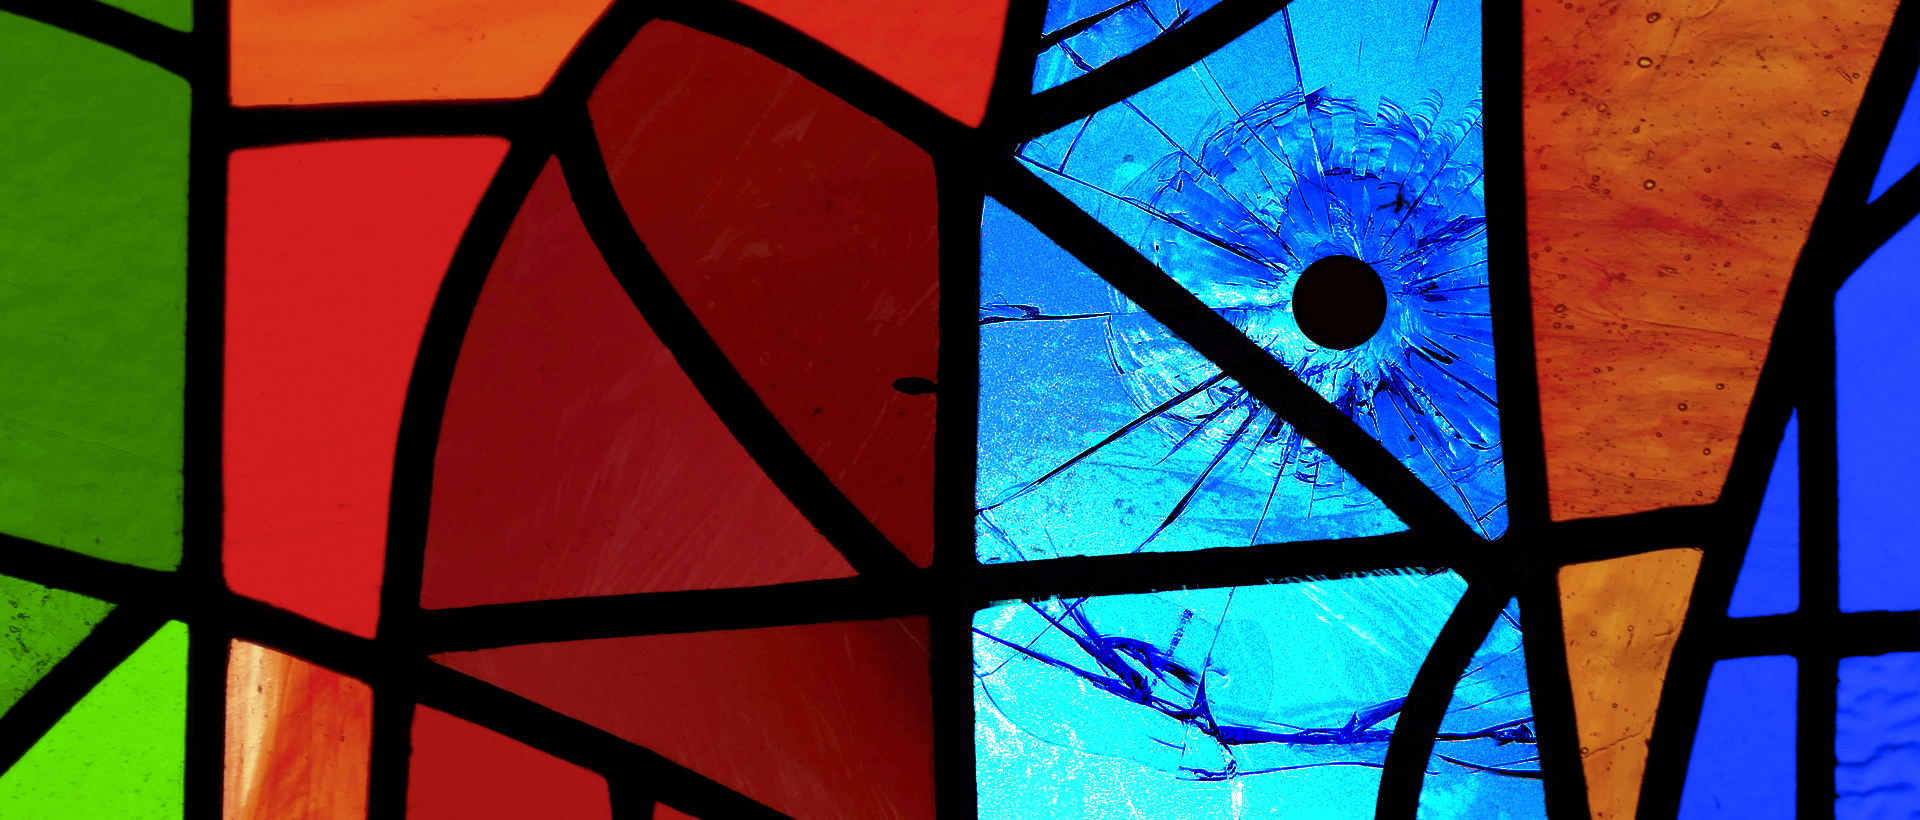 Evangelism Threatened imagery: Stained Glass panel with bullet hole